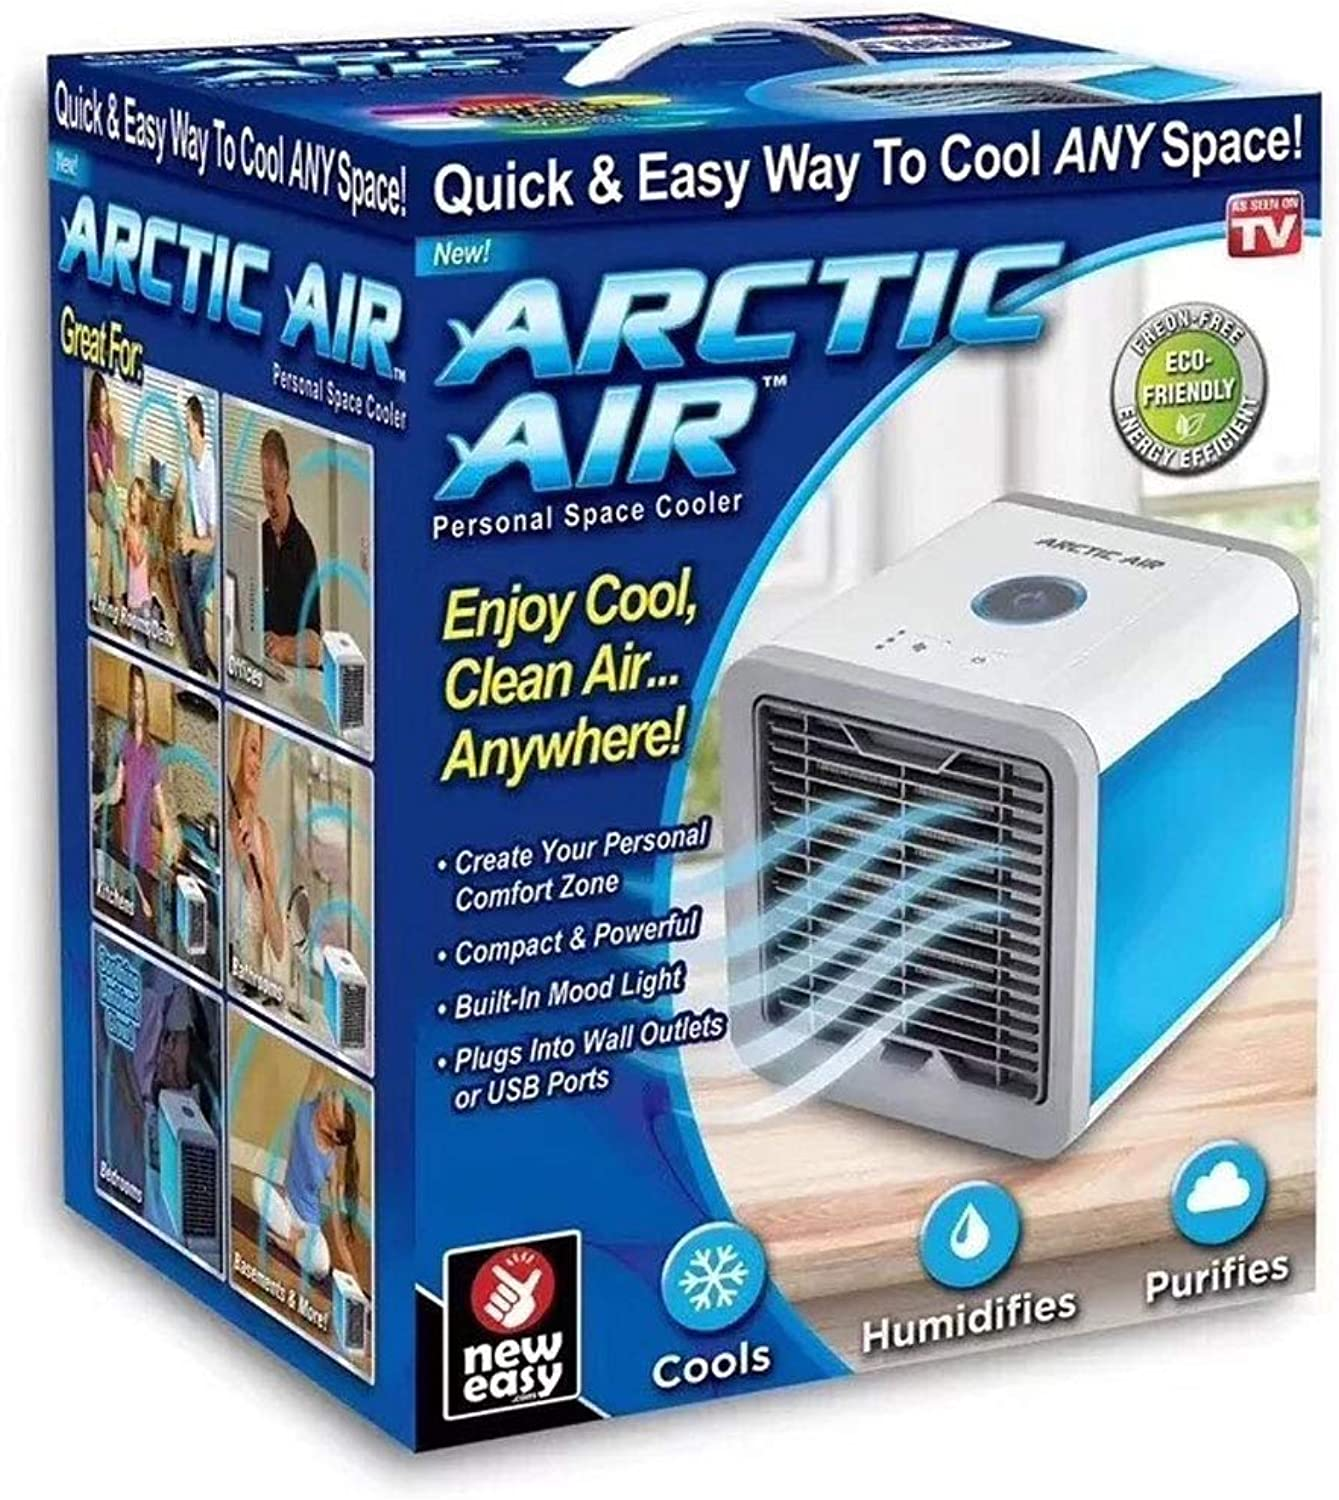 ATR Add Water Small Air Cooler, USB Power Supply Seven color Variable hot Weather Cooling Gifts.